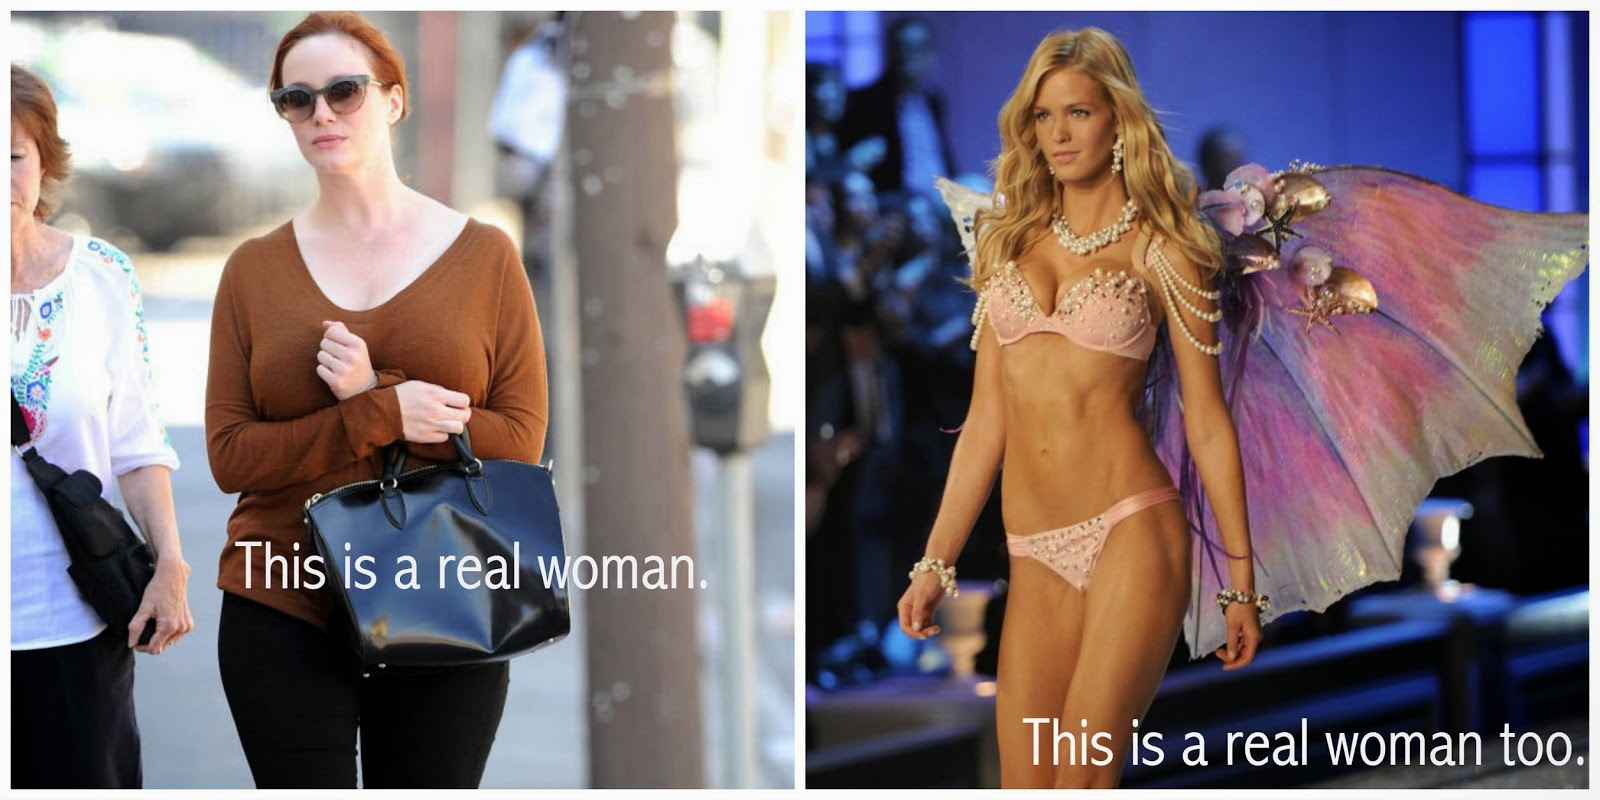 Why men like thin women